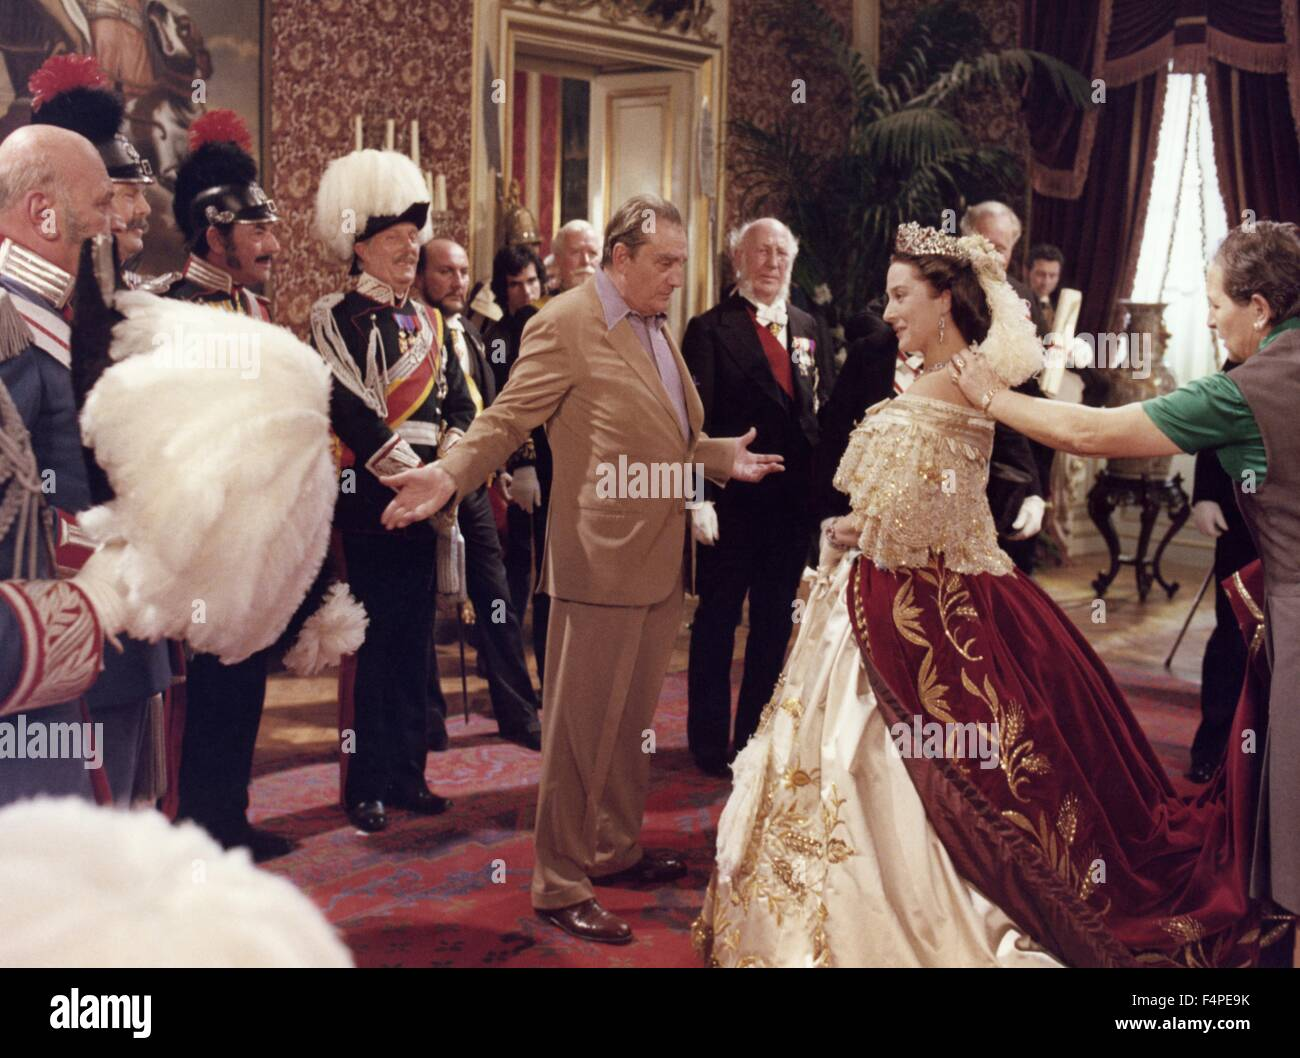 On the set, Luchino Visconti / Ludwig : The Mad King of Bavaria / 1972 directed by Luchino Visconti - Stock Image